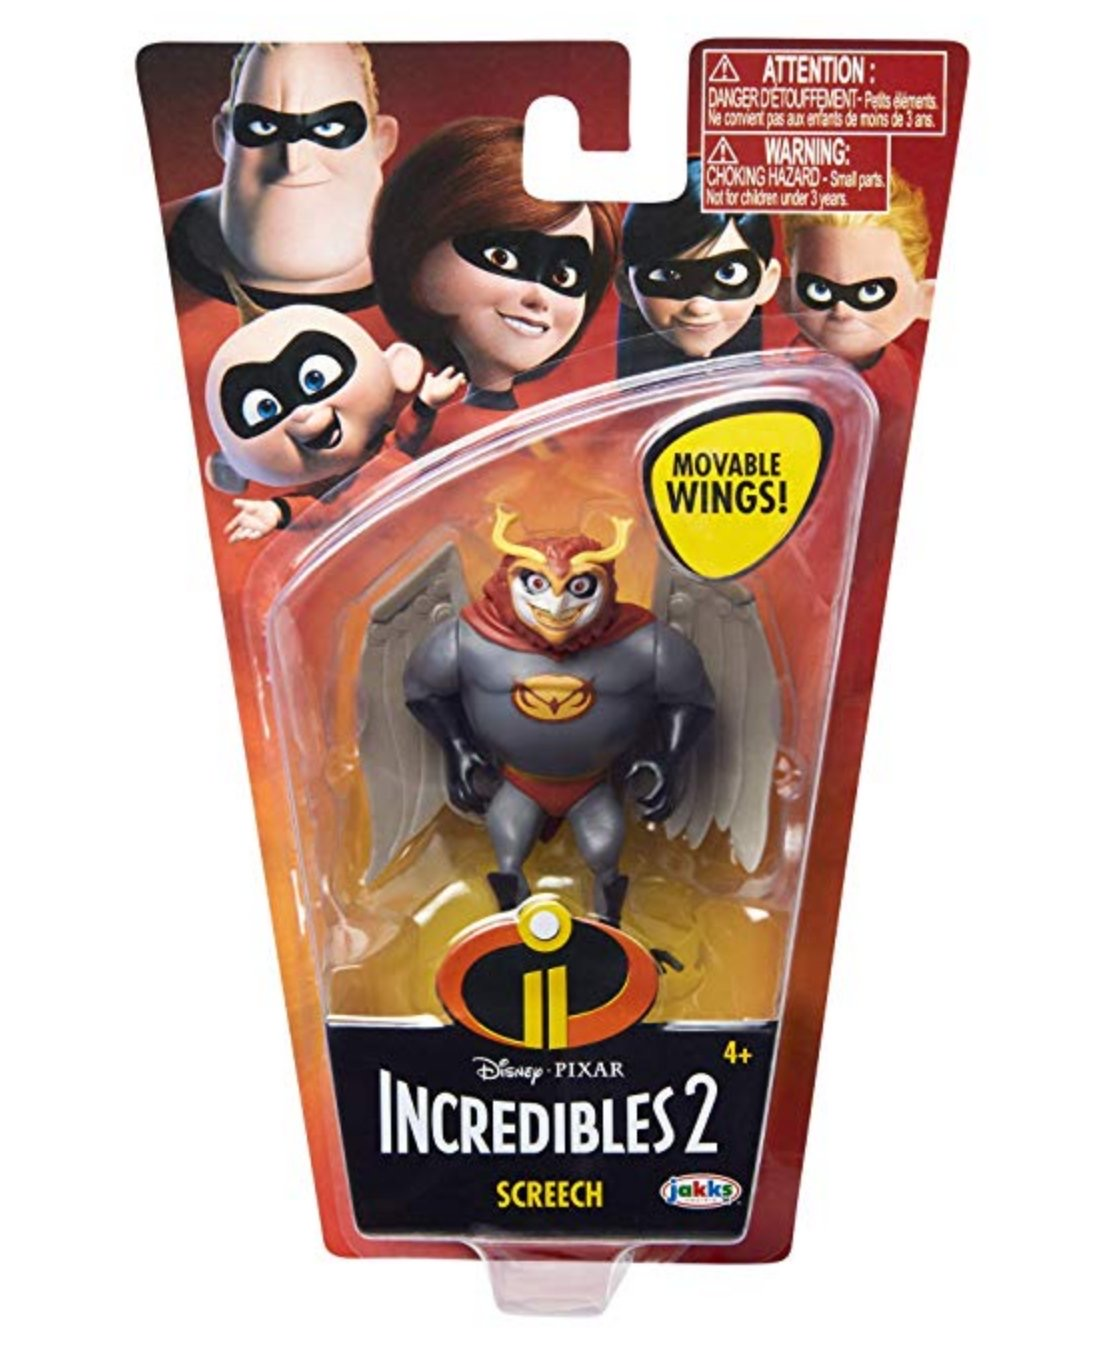 incredibles 2 wave 3 screech figure